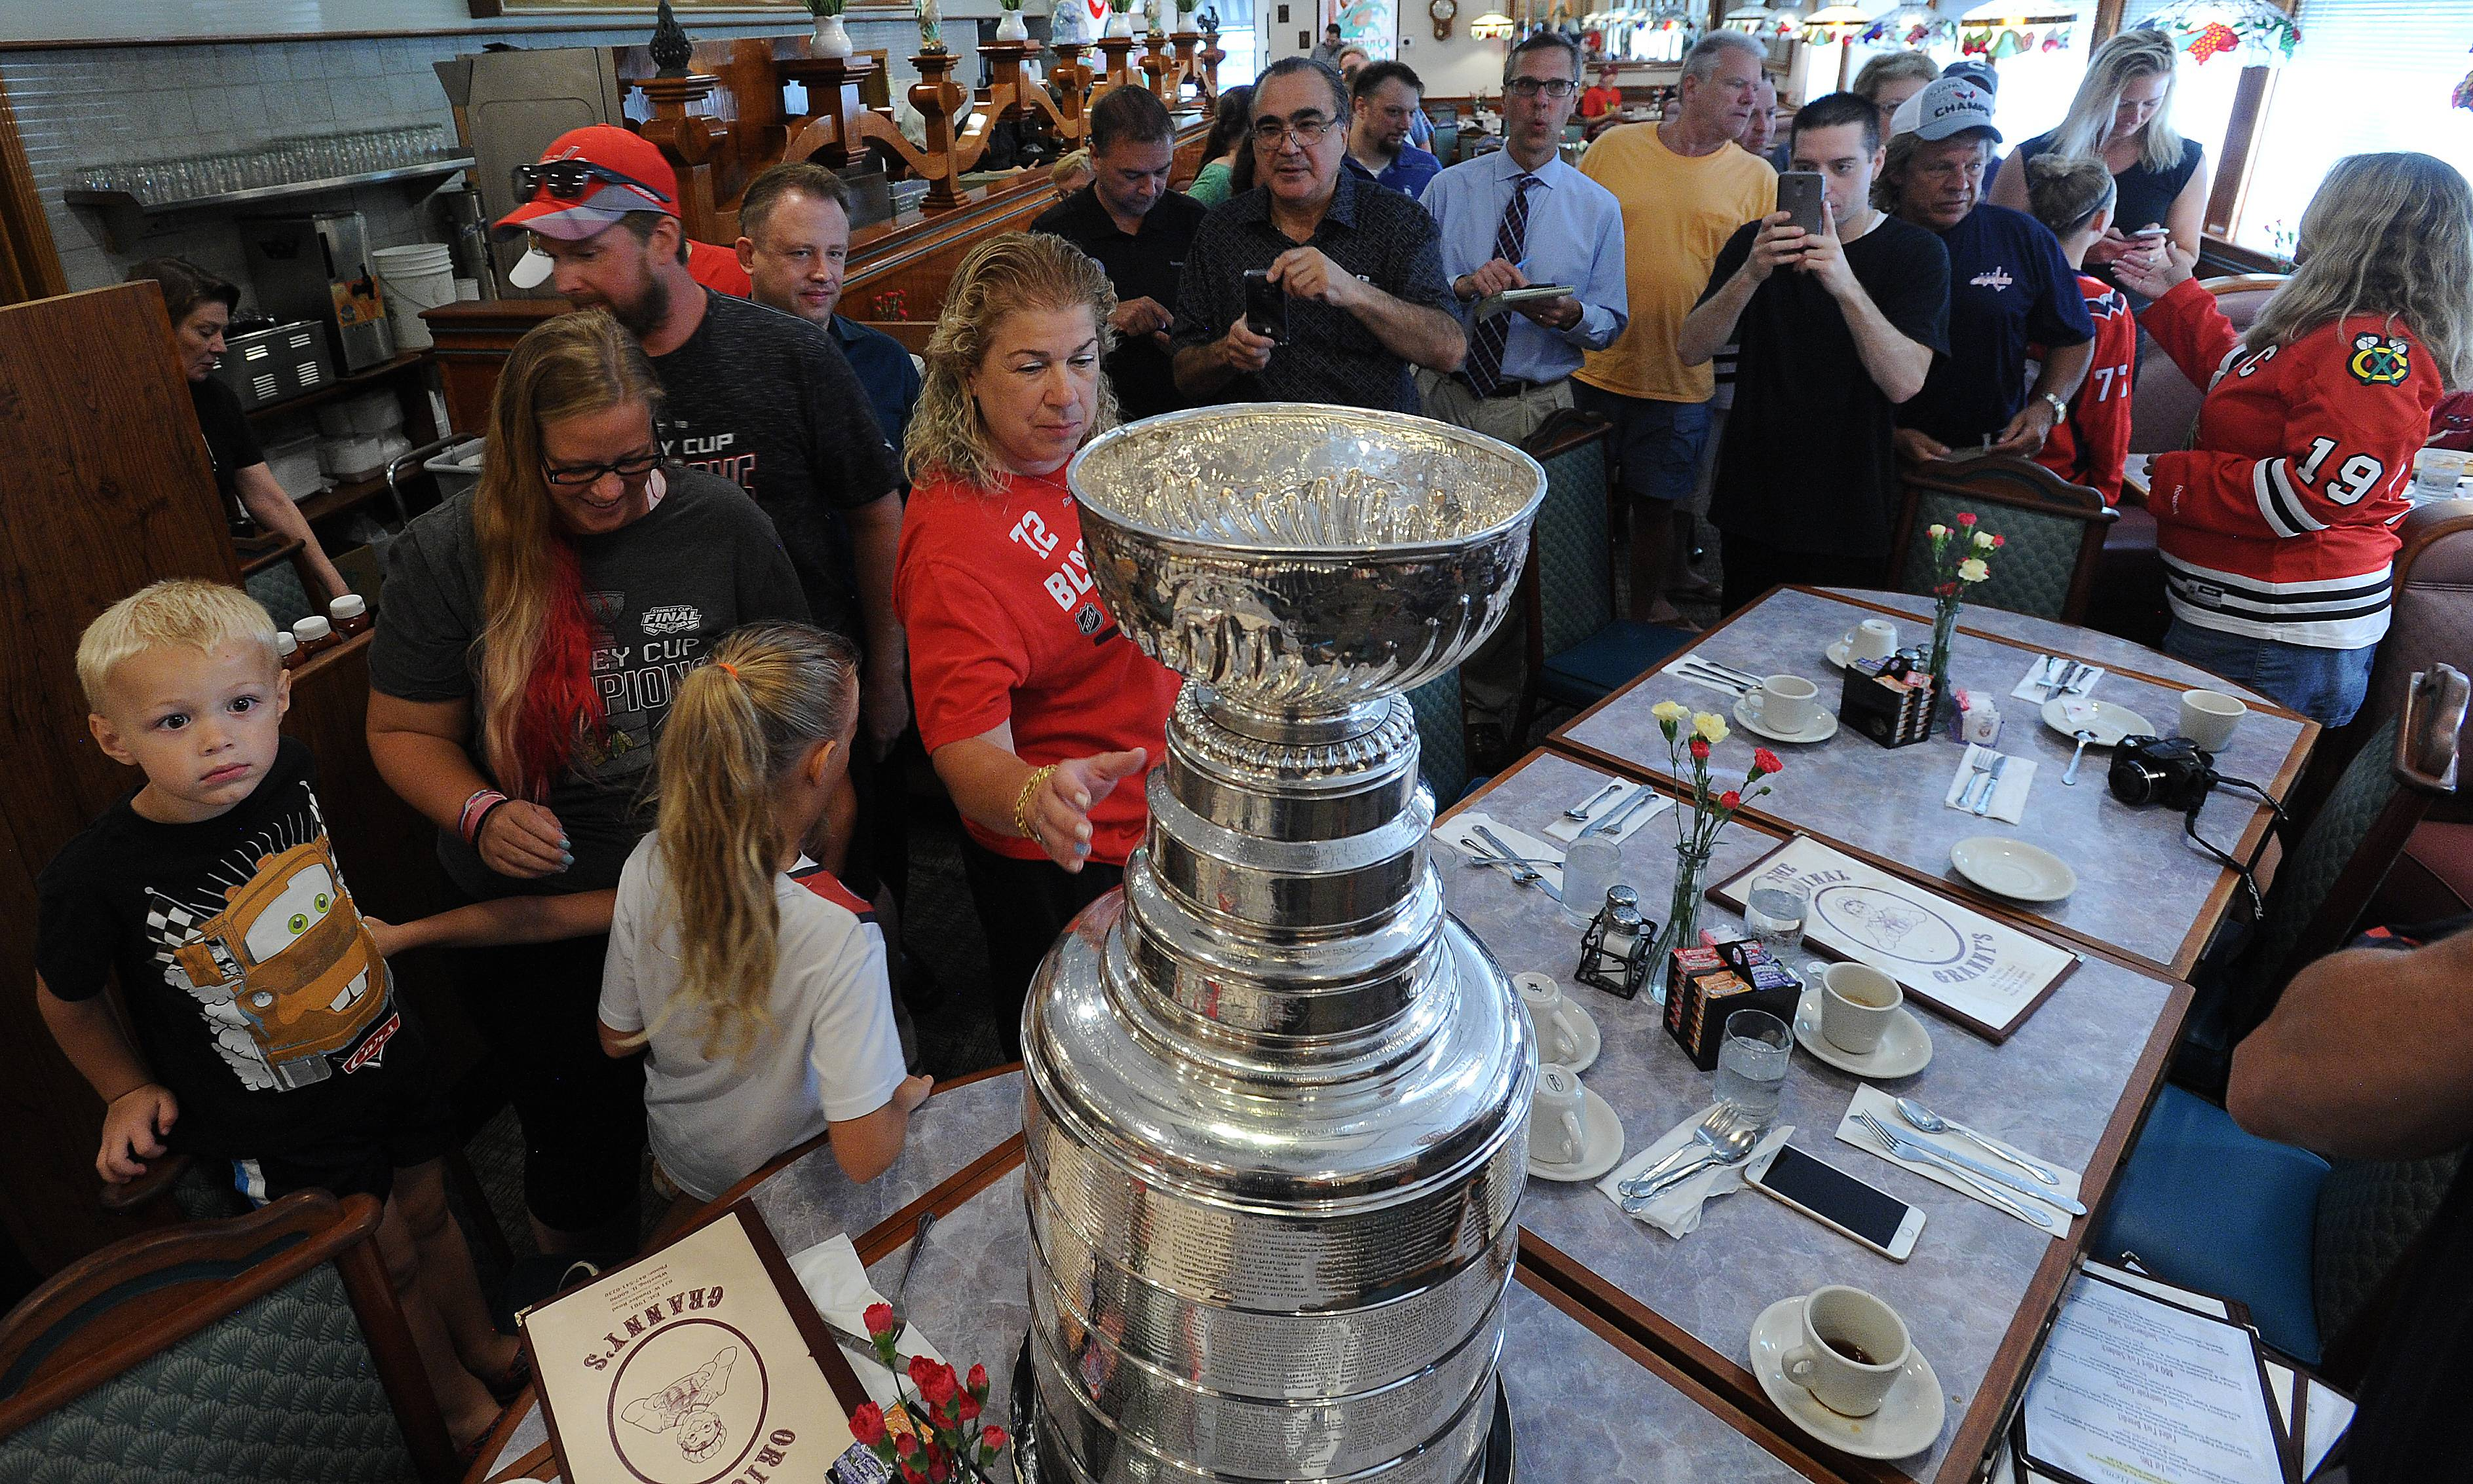 Diners at The Original Granny's restaurant in Wheeling enjoyed a festive atmosphere Tuesday morning as Lake Zurich resident Steve Richmond, director of player development for the Washington Capitals, spent part of his day there with the iconic trophy.